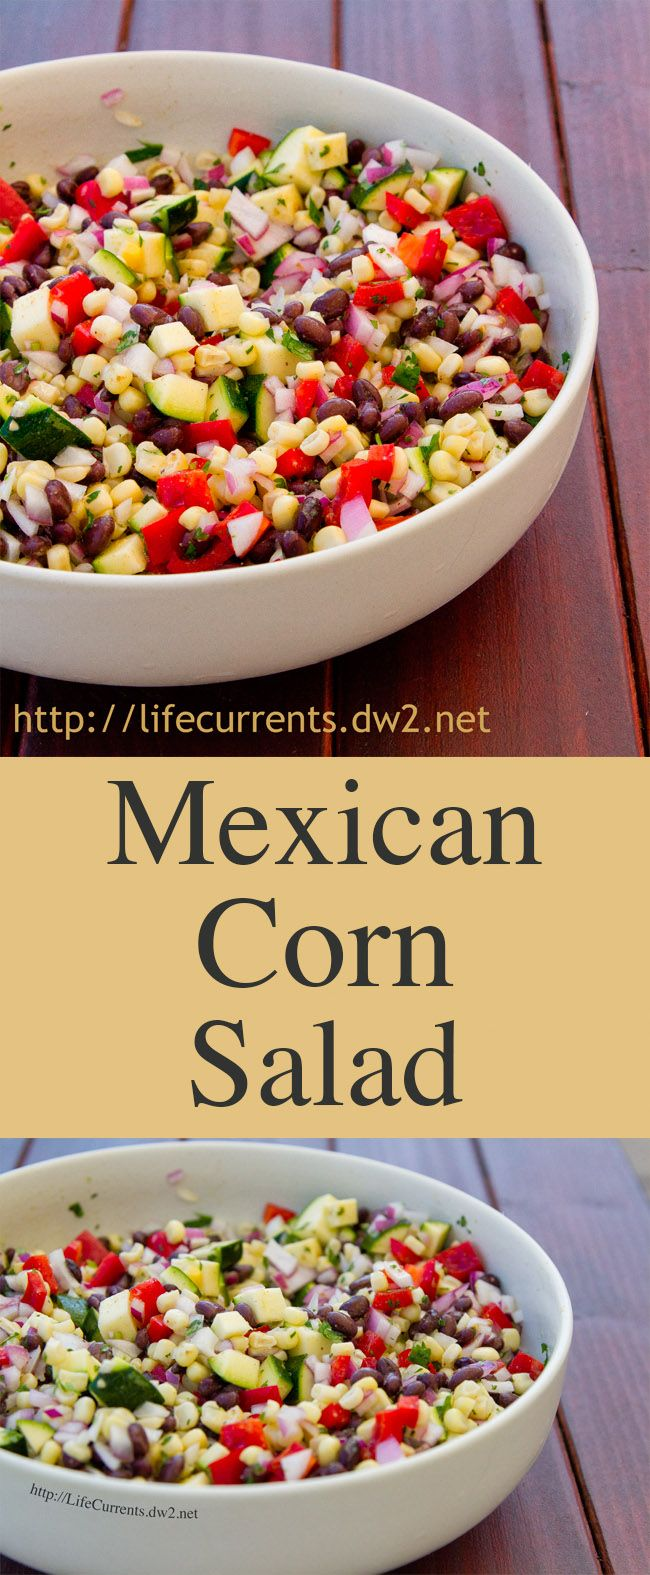 Mexican Corn Salad is a great healthy side dish or even a dip to serve with chips! Perfect for any party or gathering